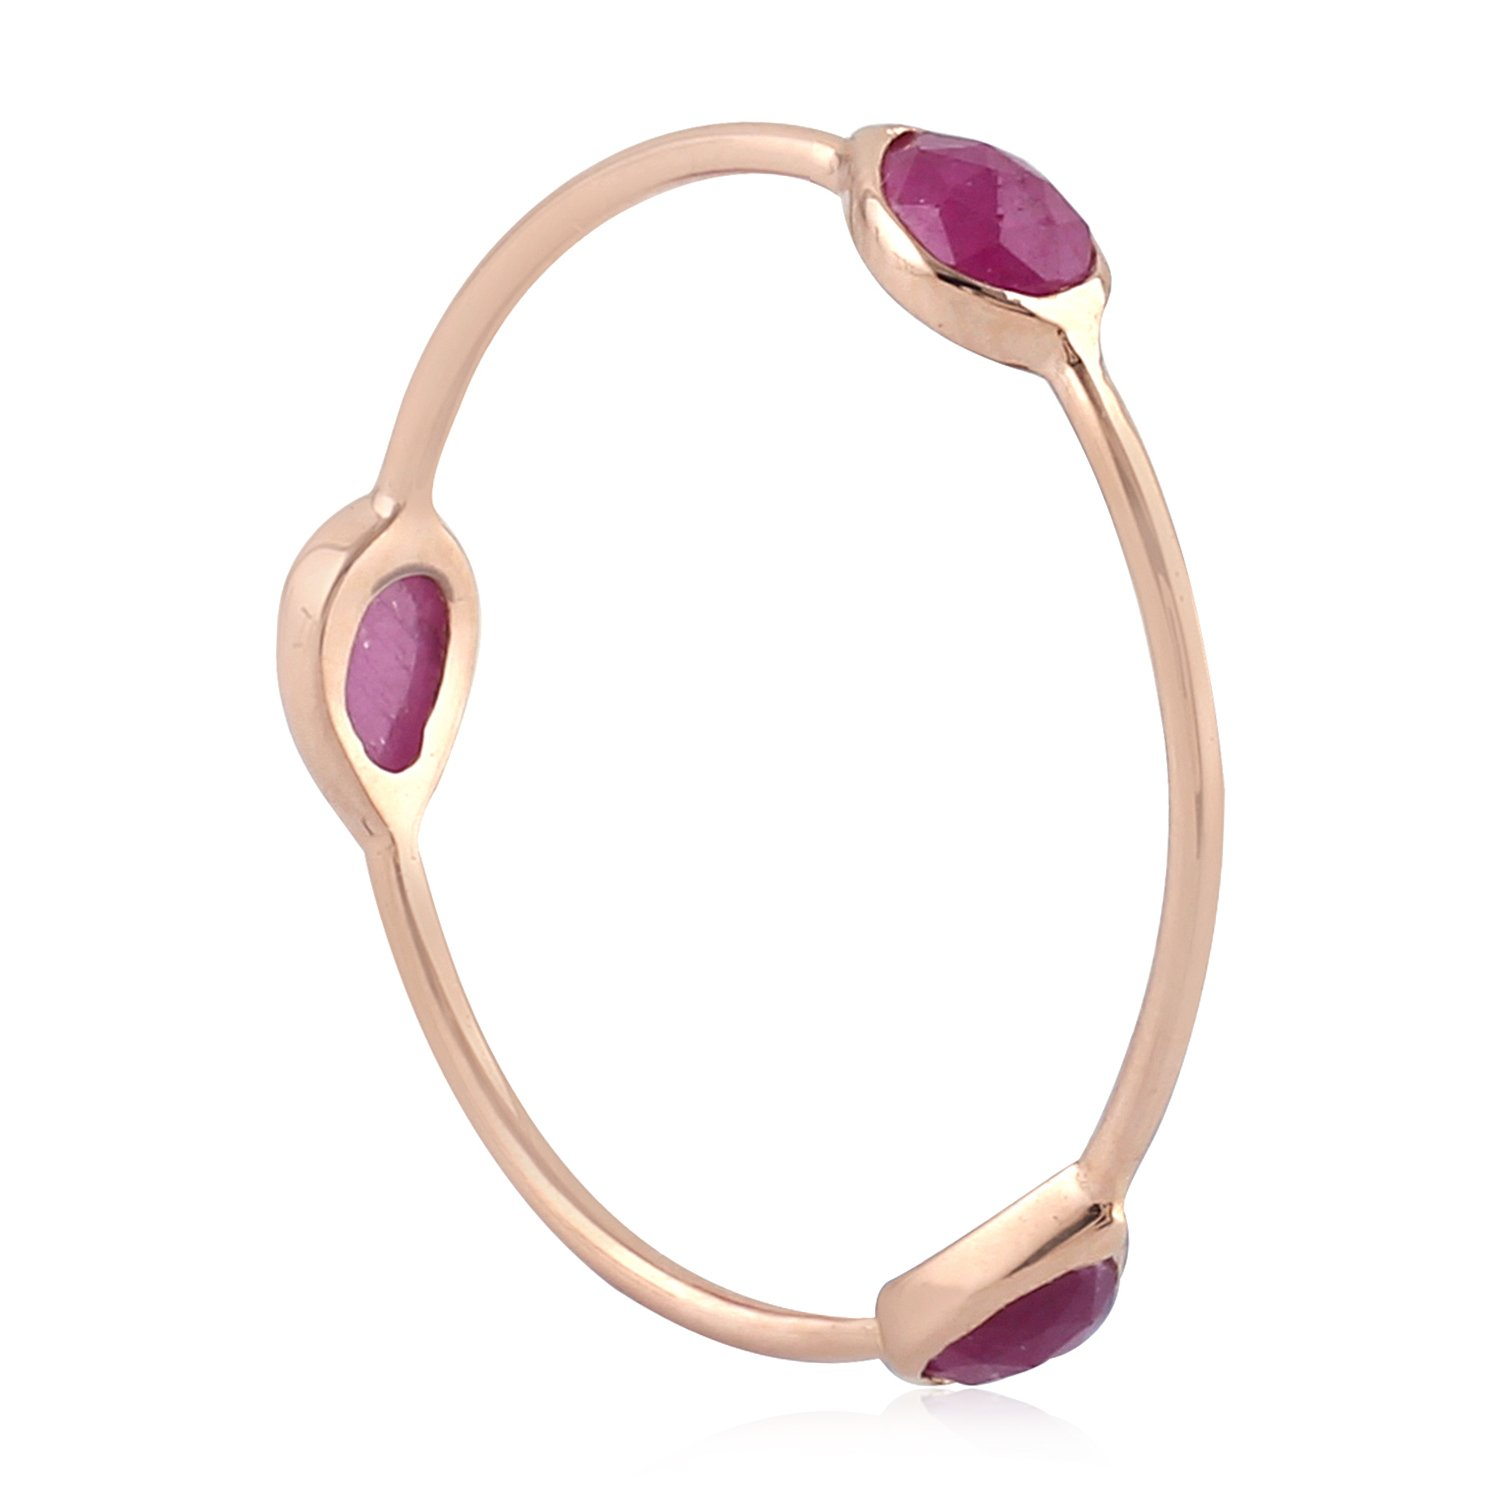 18K Solid Rose Gold Natural Ruby 3 Stone Ring, Size 7